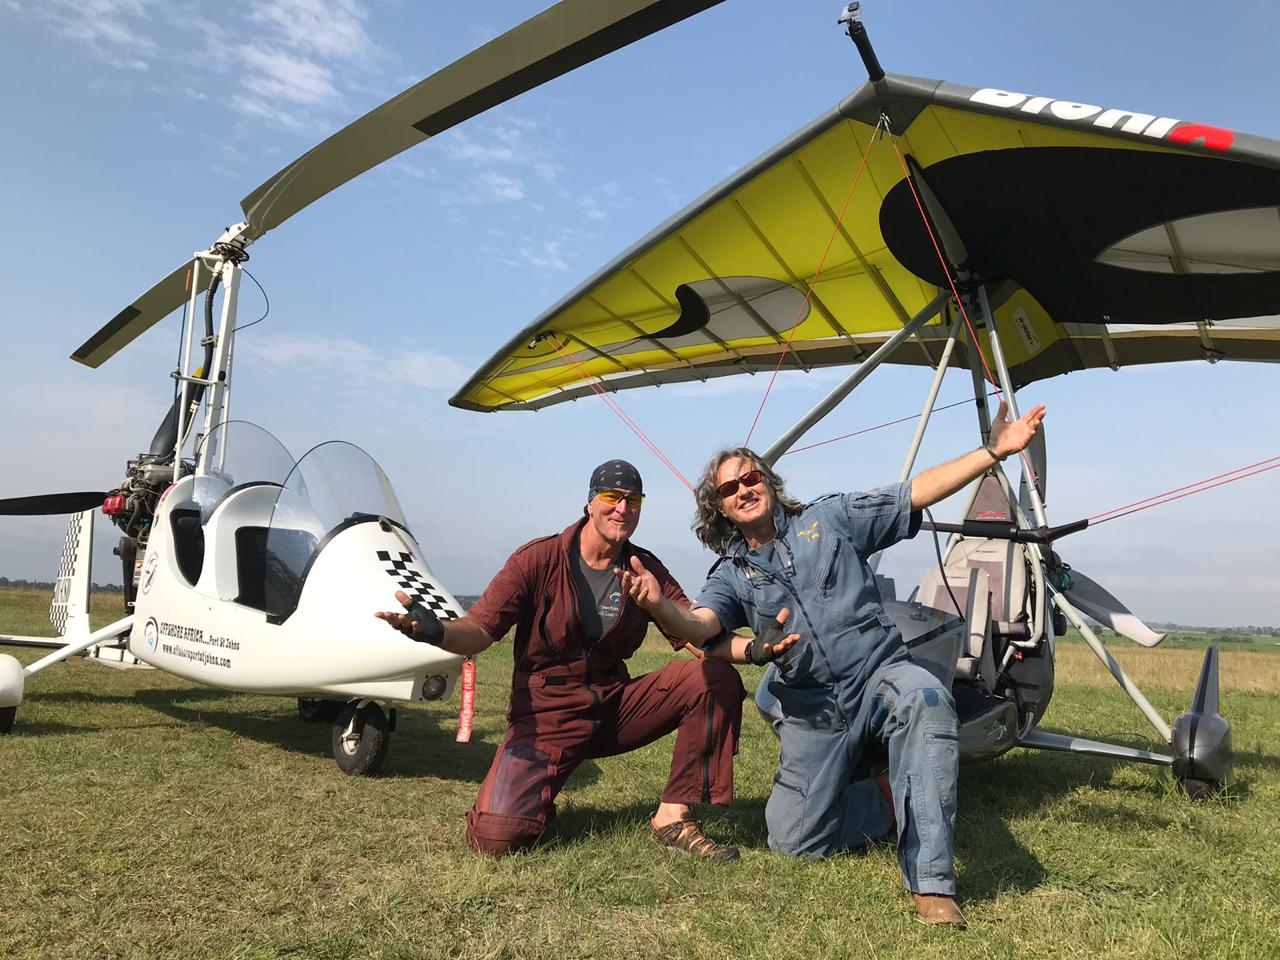 Hang gliding and Paragliding tandem flights in Wilderness, Sedgefield Garden Route